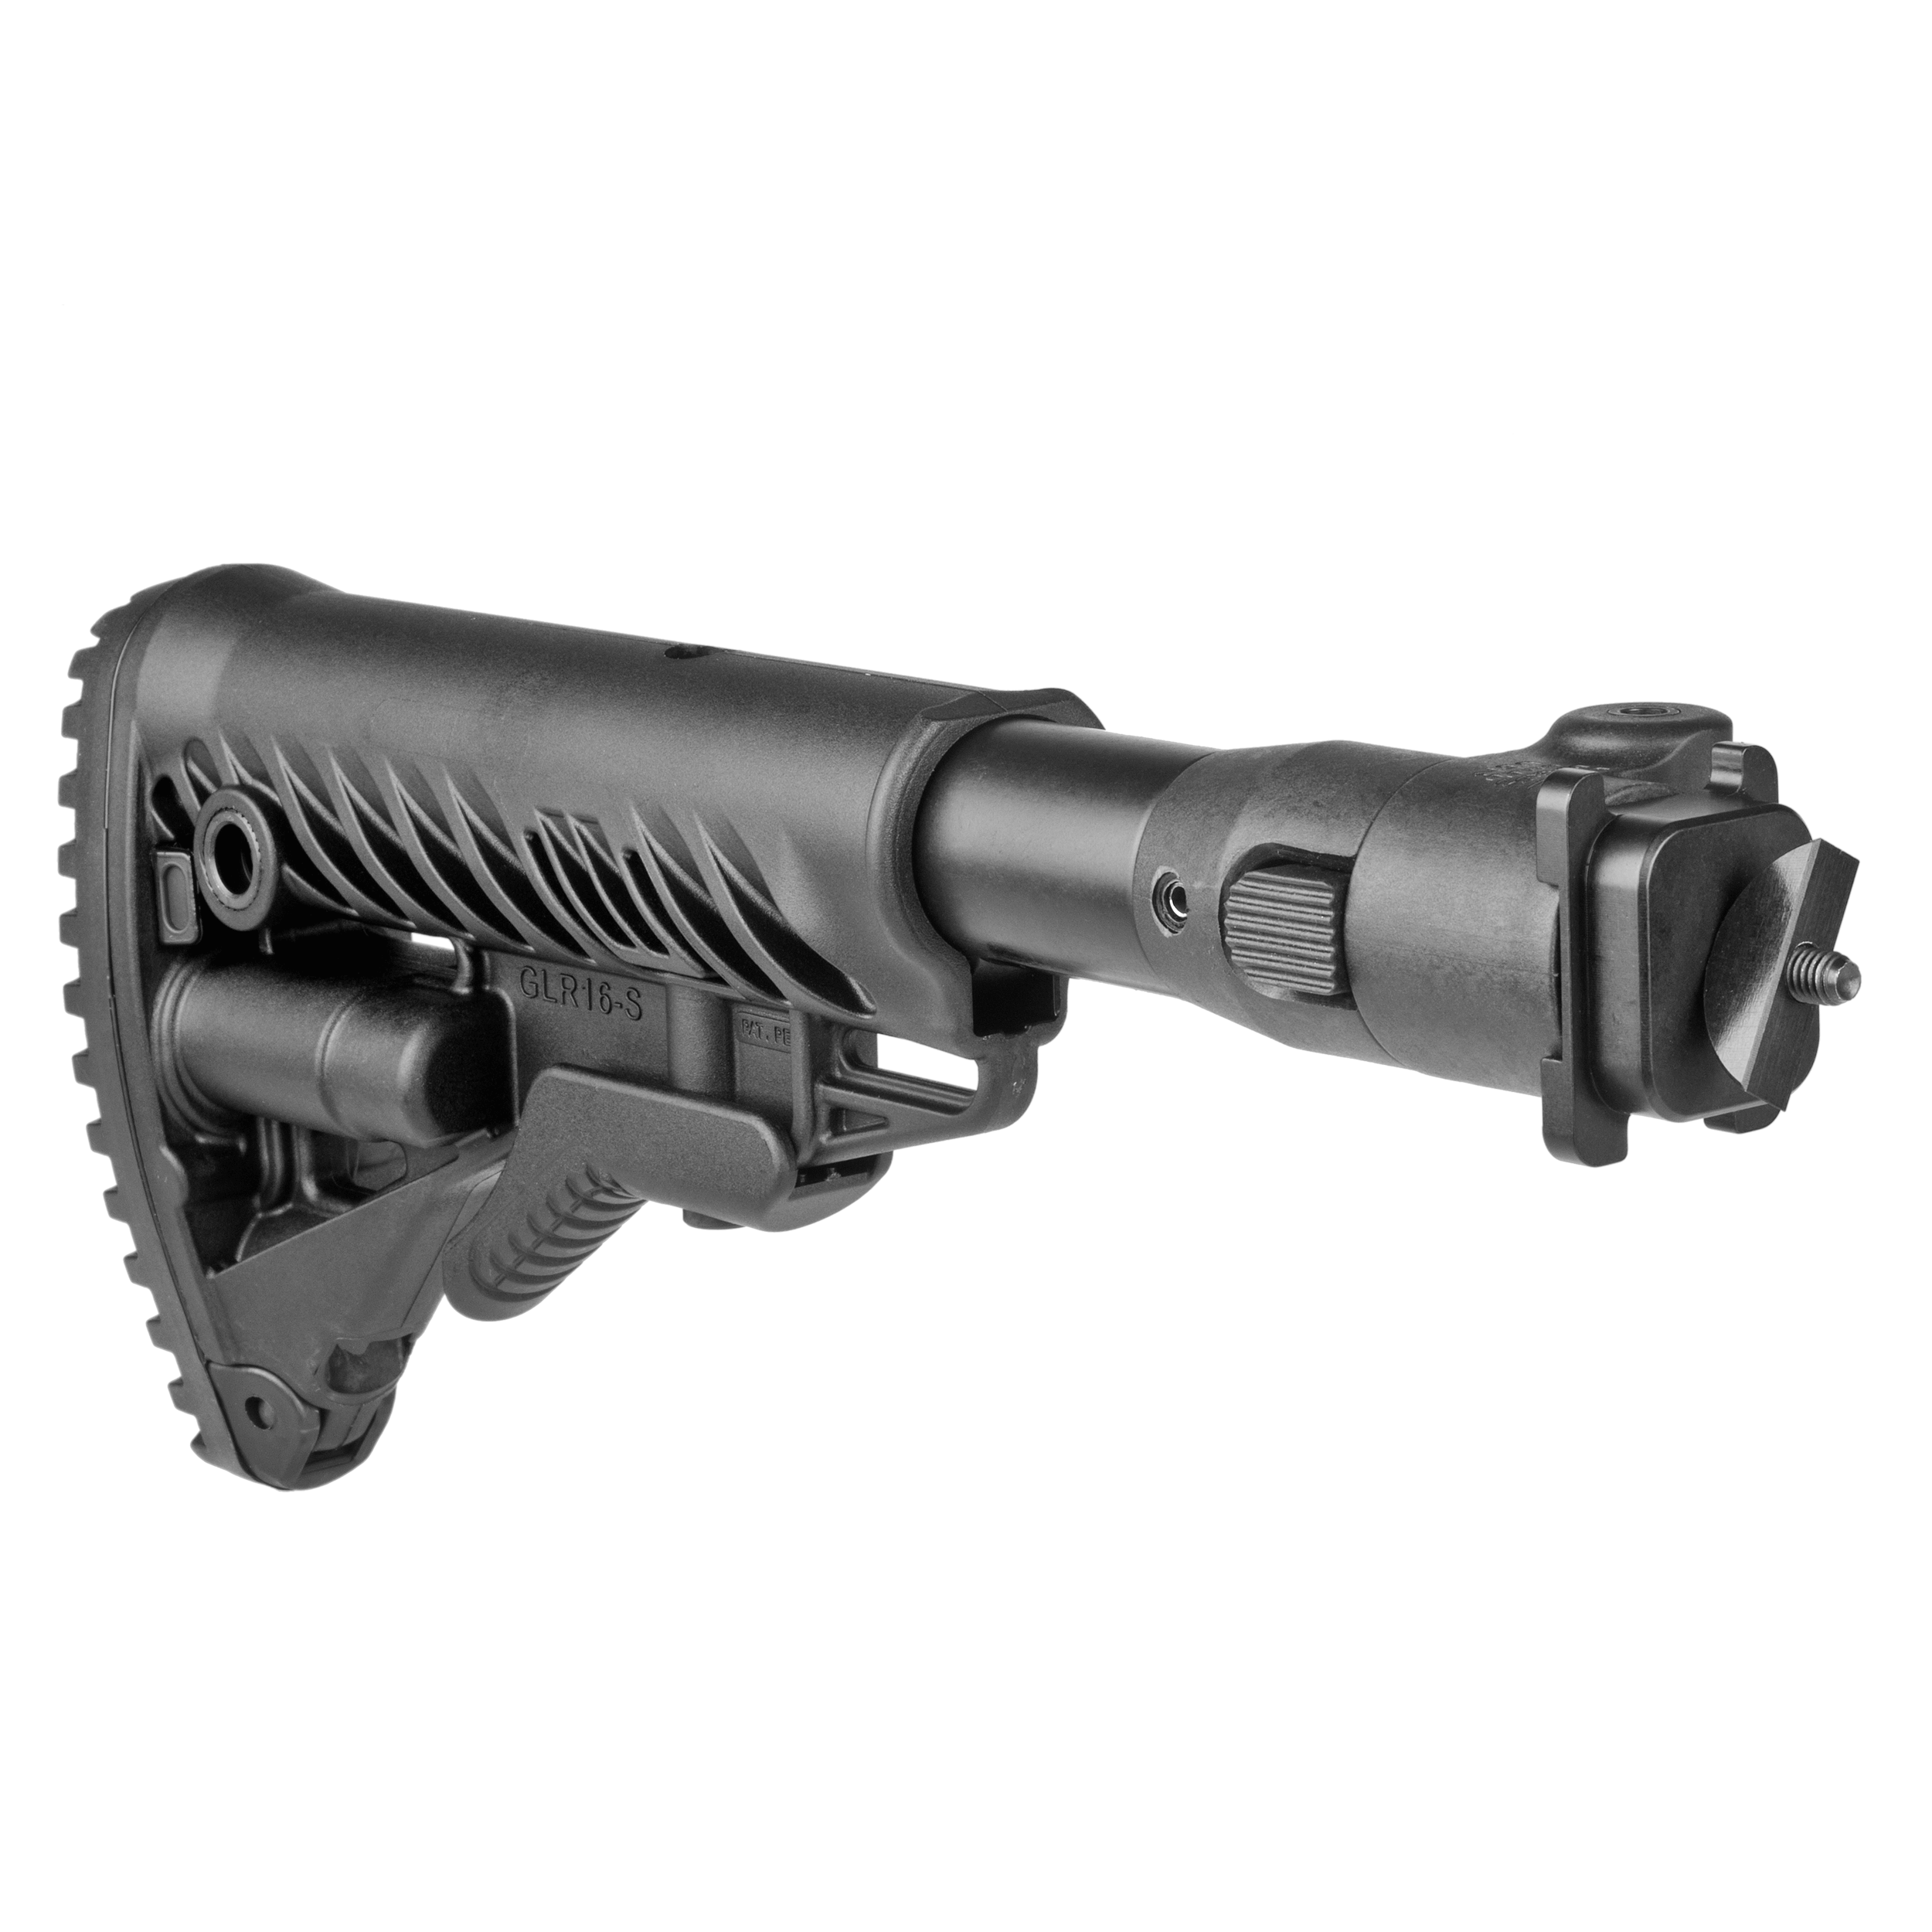 AK47 Folding Buttstock / Milled Receivers (Polymer Joint)